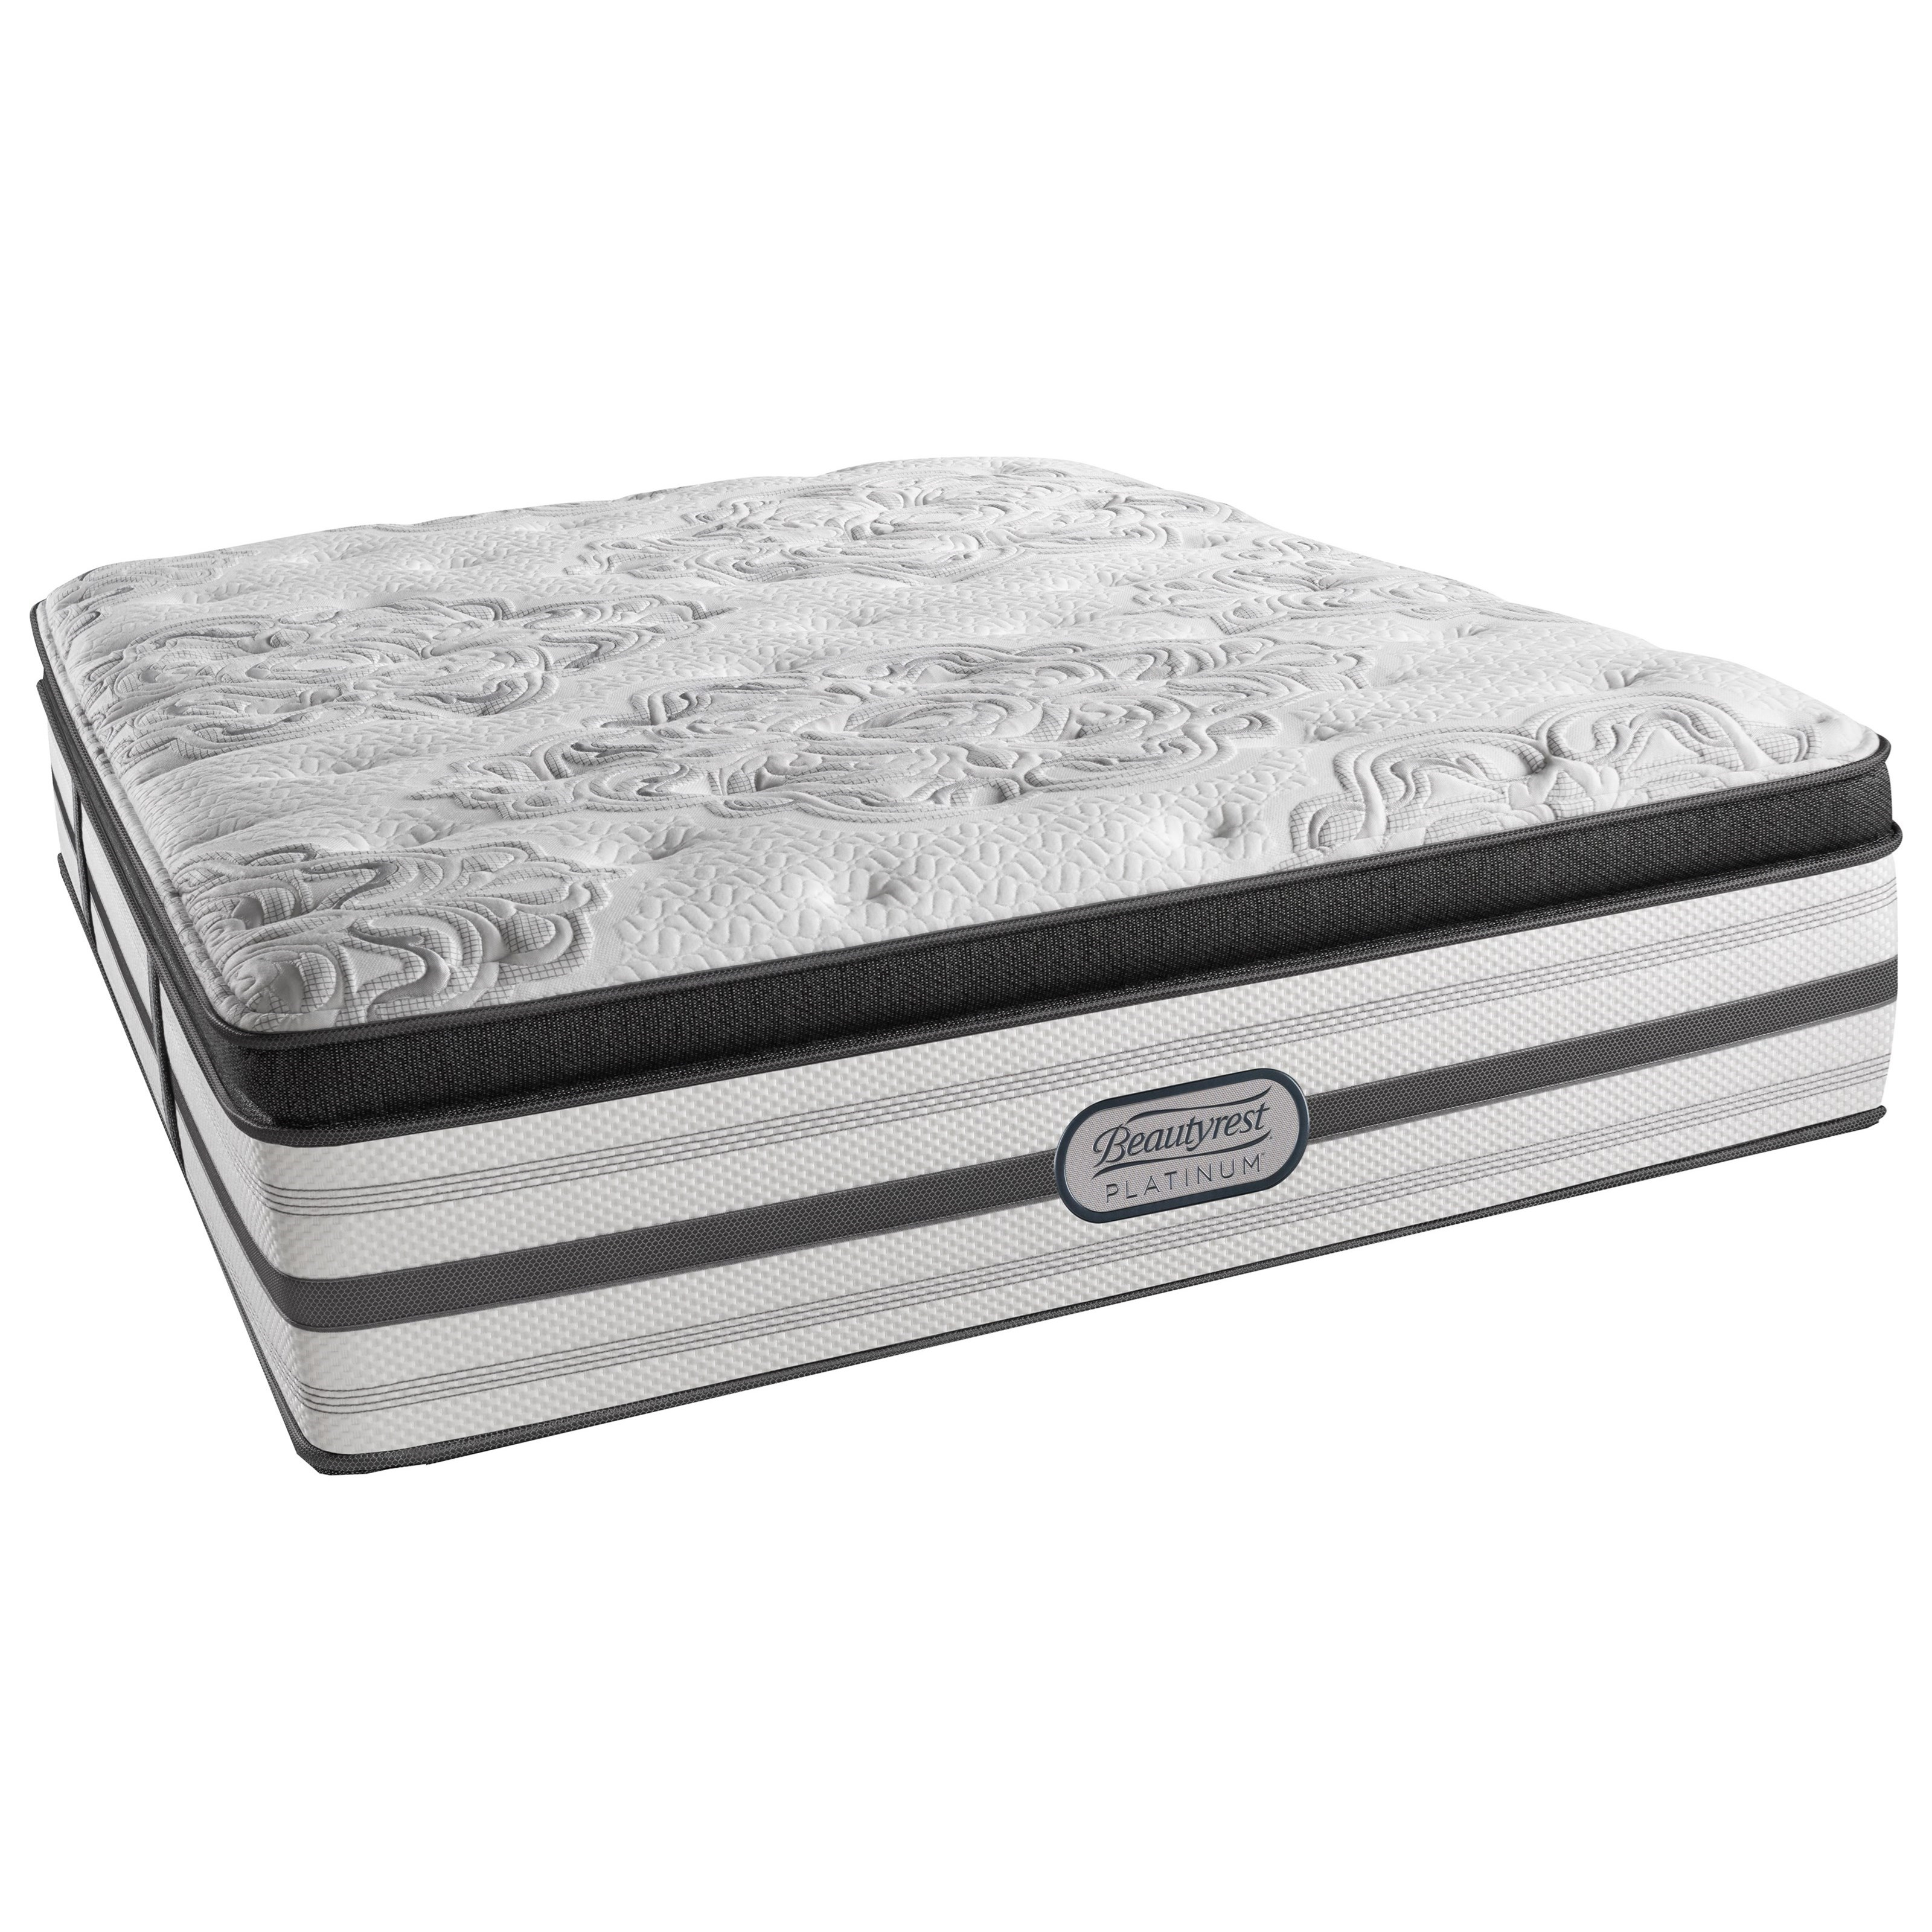 Beautyrest Platinum Katherine Twin XL Plush Box Top Adjustable Set - Item Number: LV4PLBT-TXL+SM1-TXL